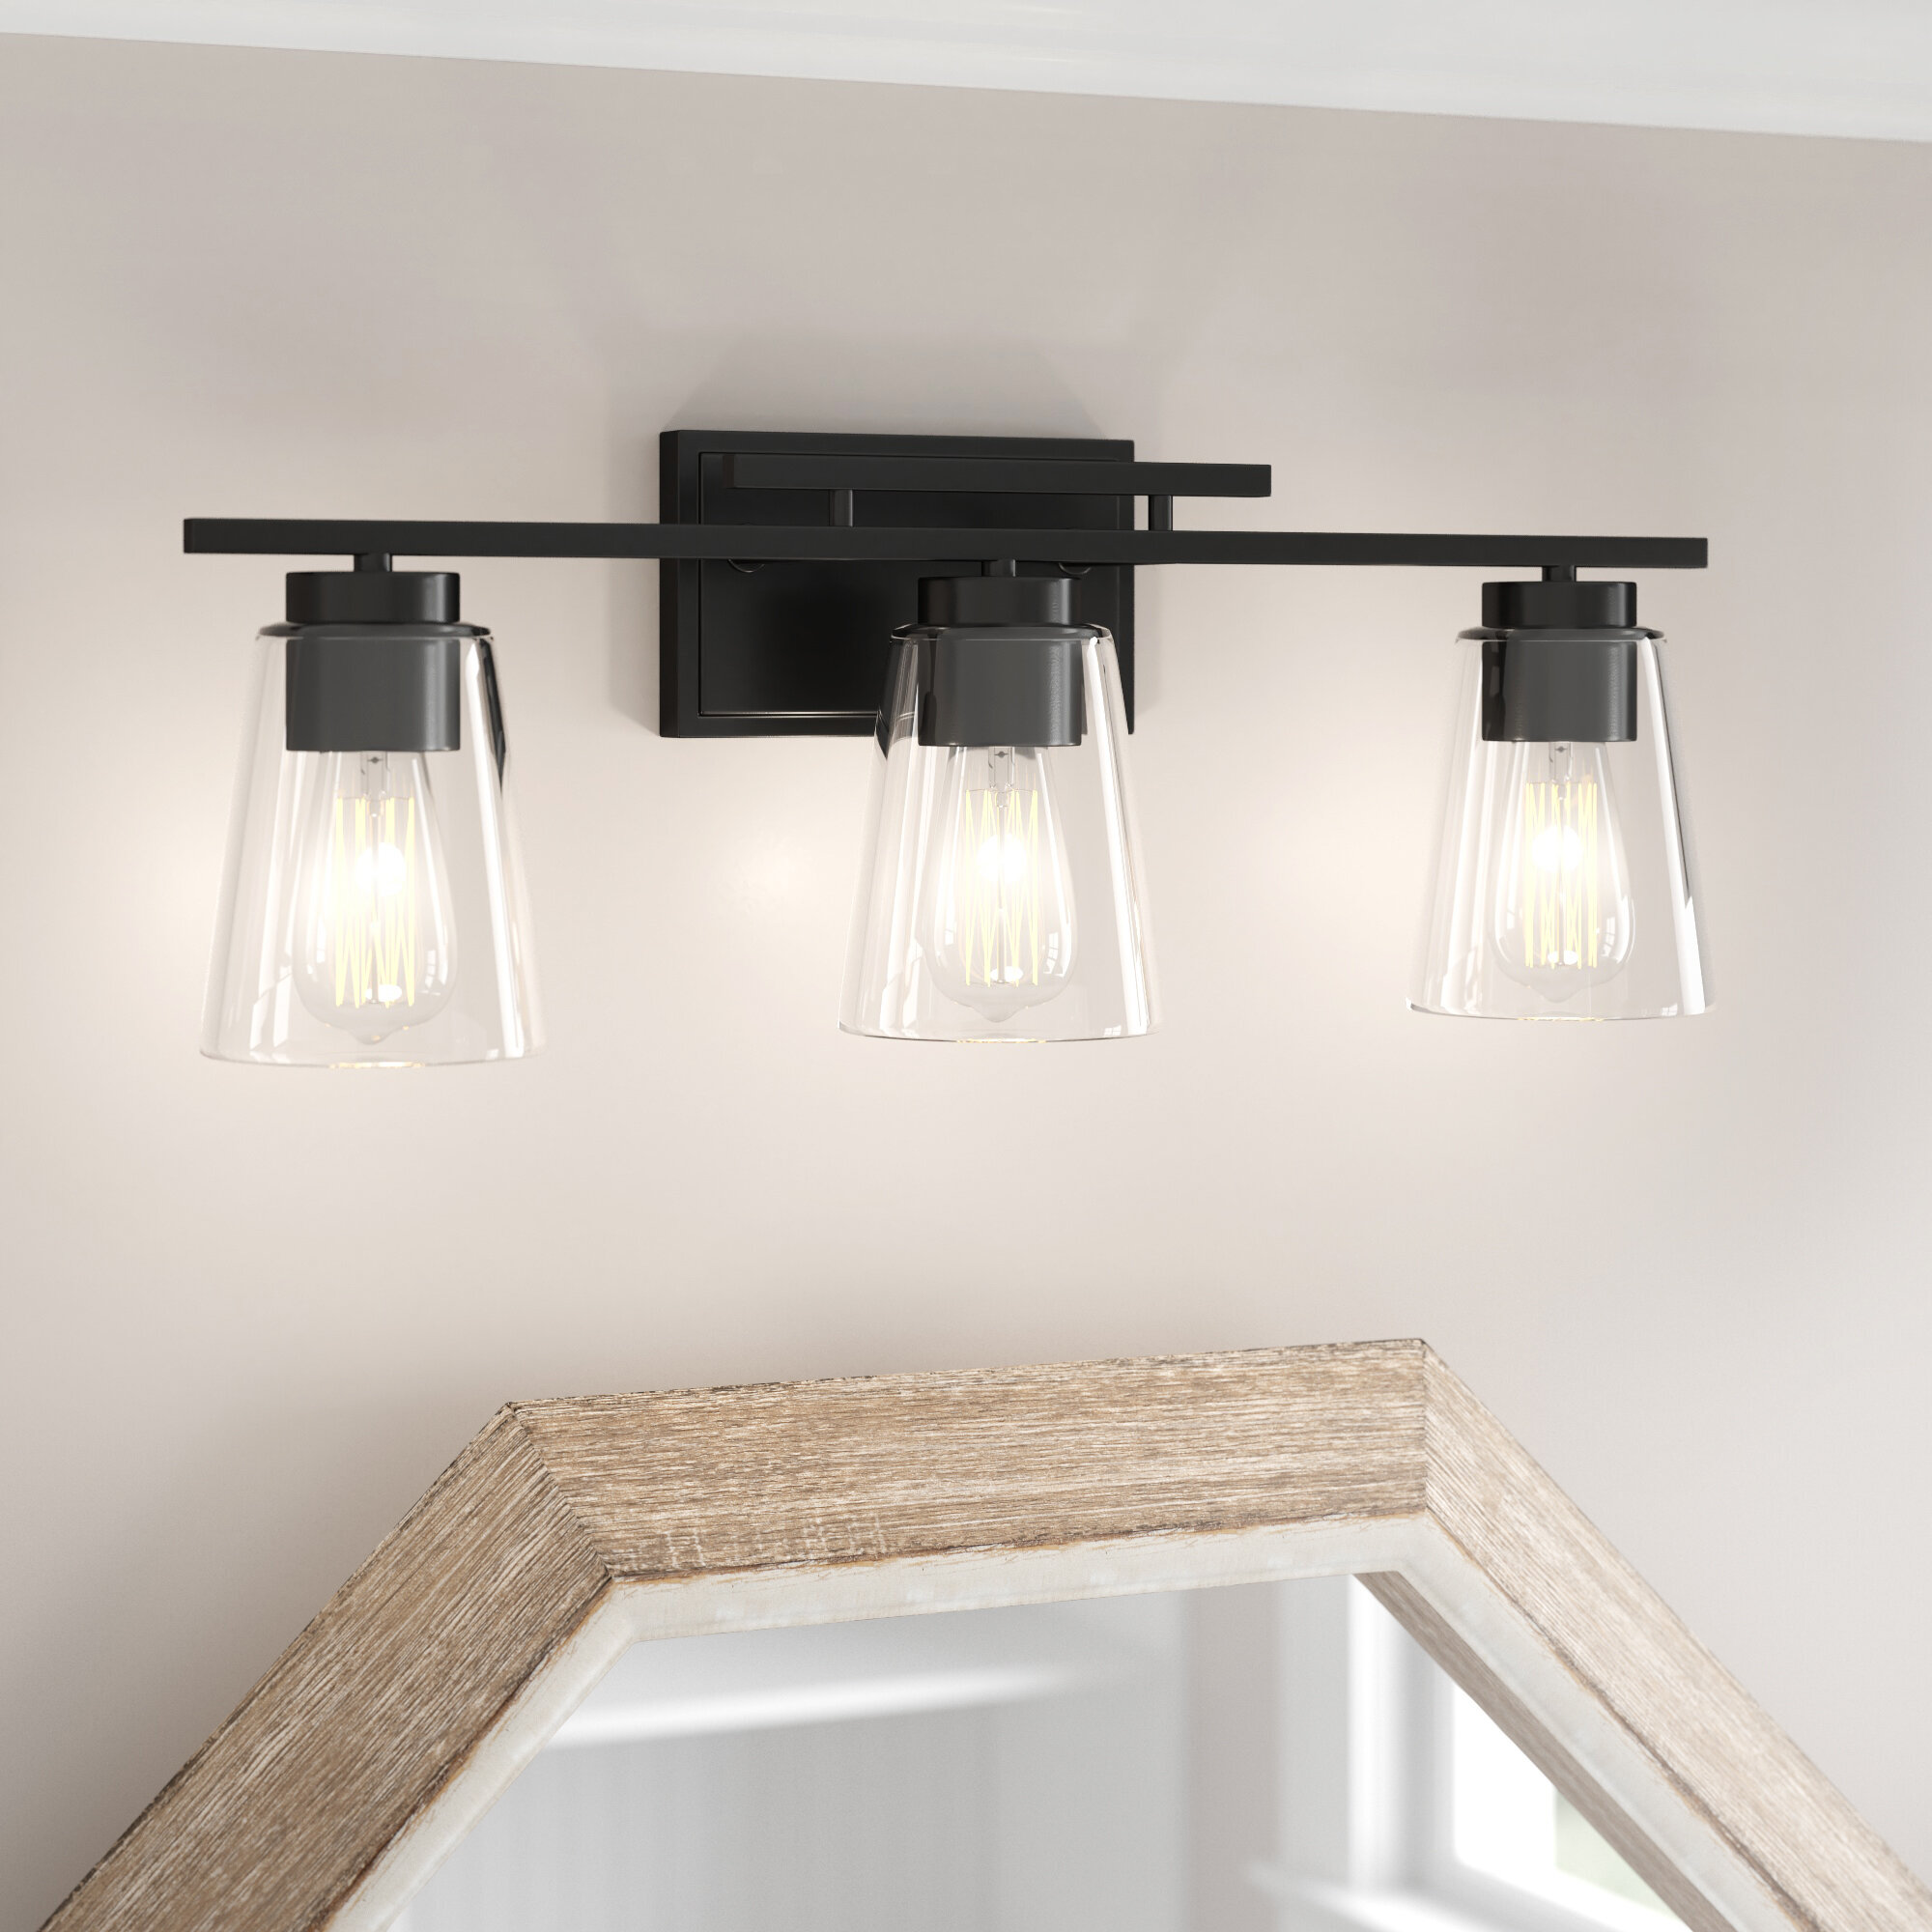 Bathroom Vanity Lighting Light Fixtures